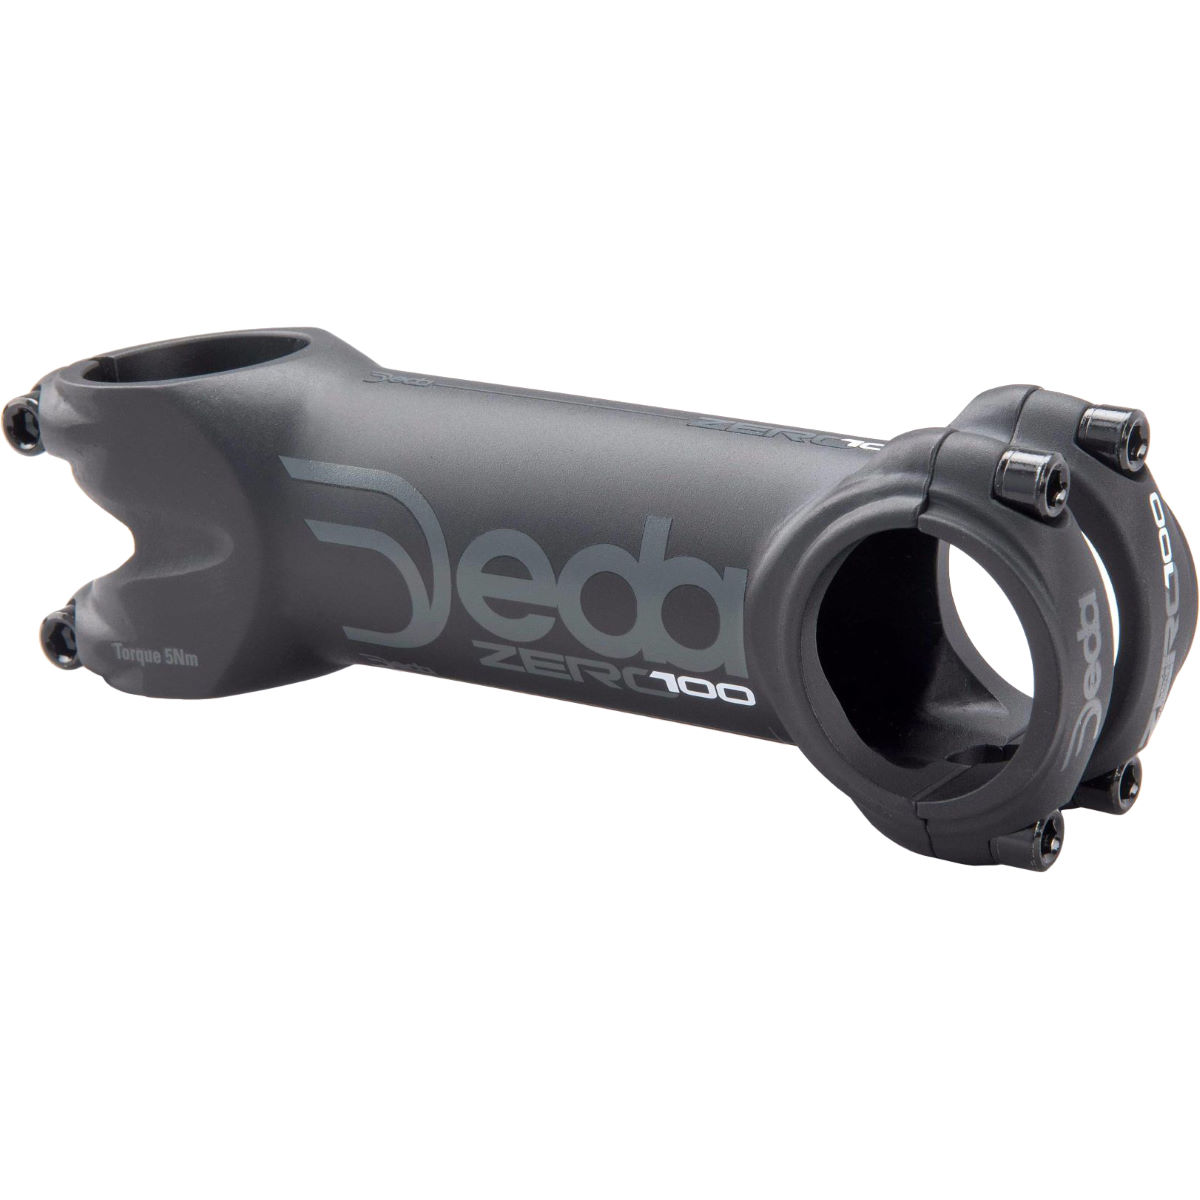 Deda Zero100 Stem - 80mm Black on Black | Stems